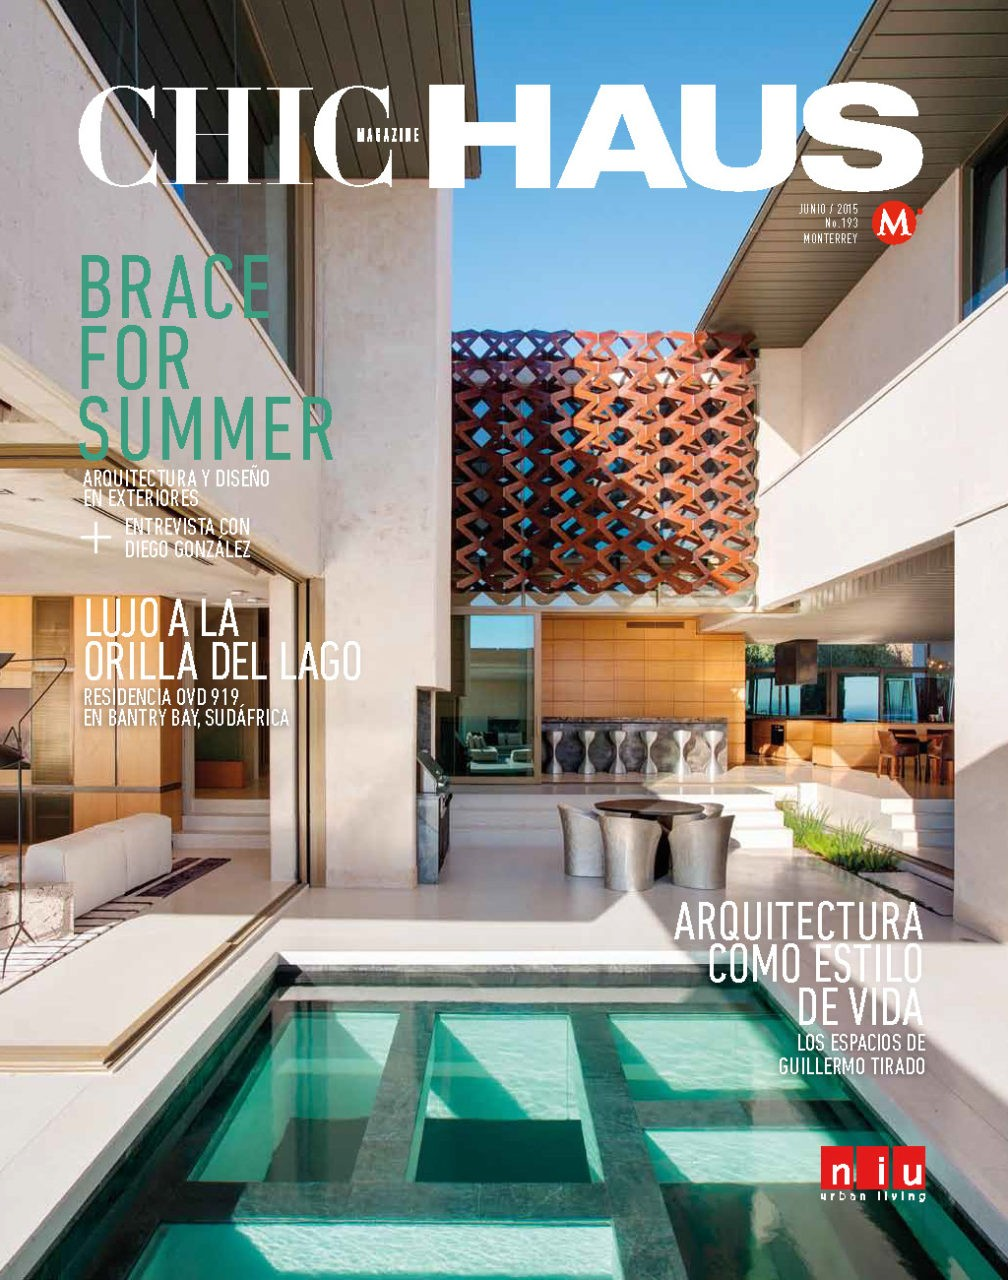 https://www.saota.com/wp-content/uploads/2018/01/MX_ChicHaus_June-2015_OVD919_Page_1.jpg